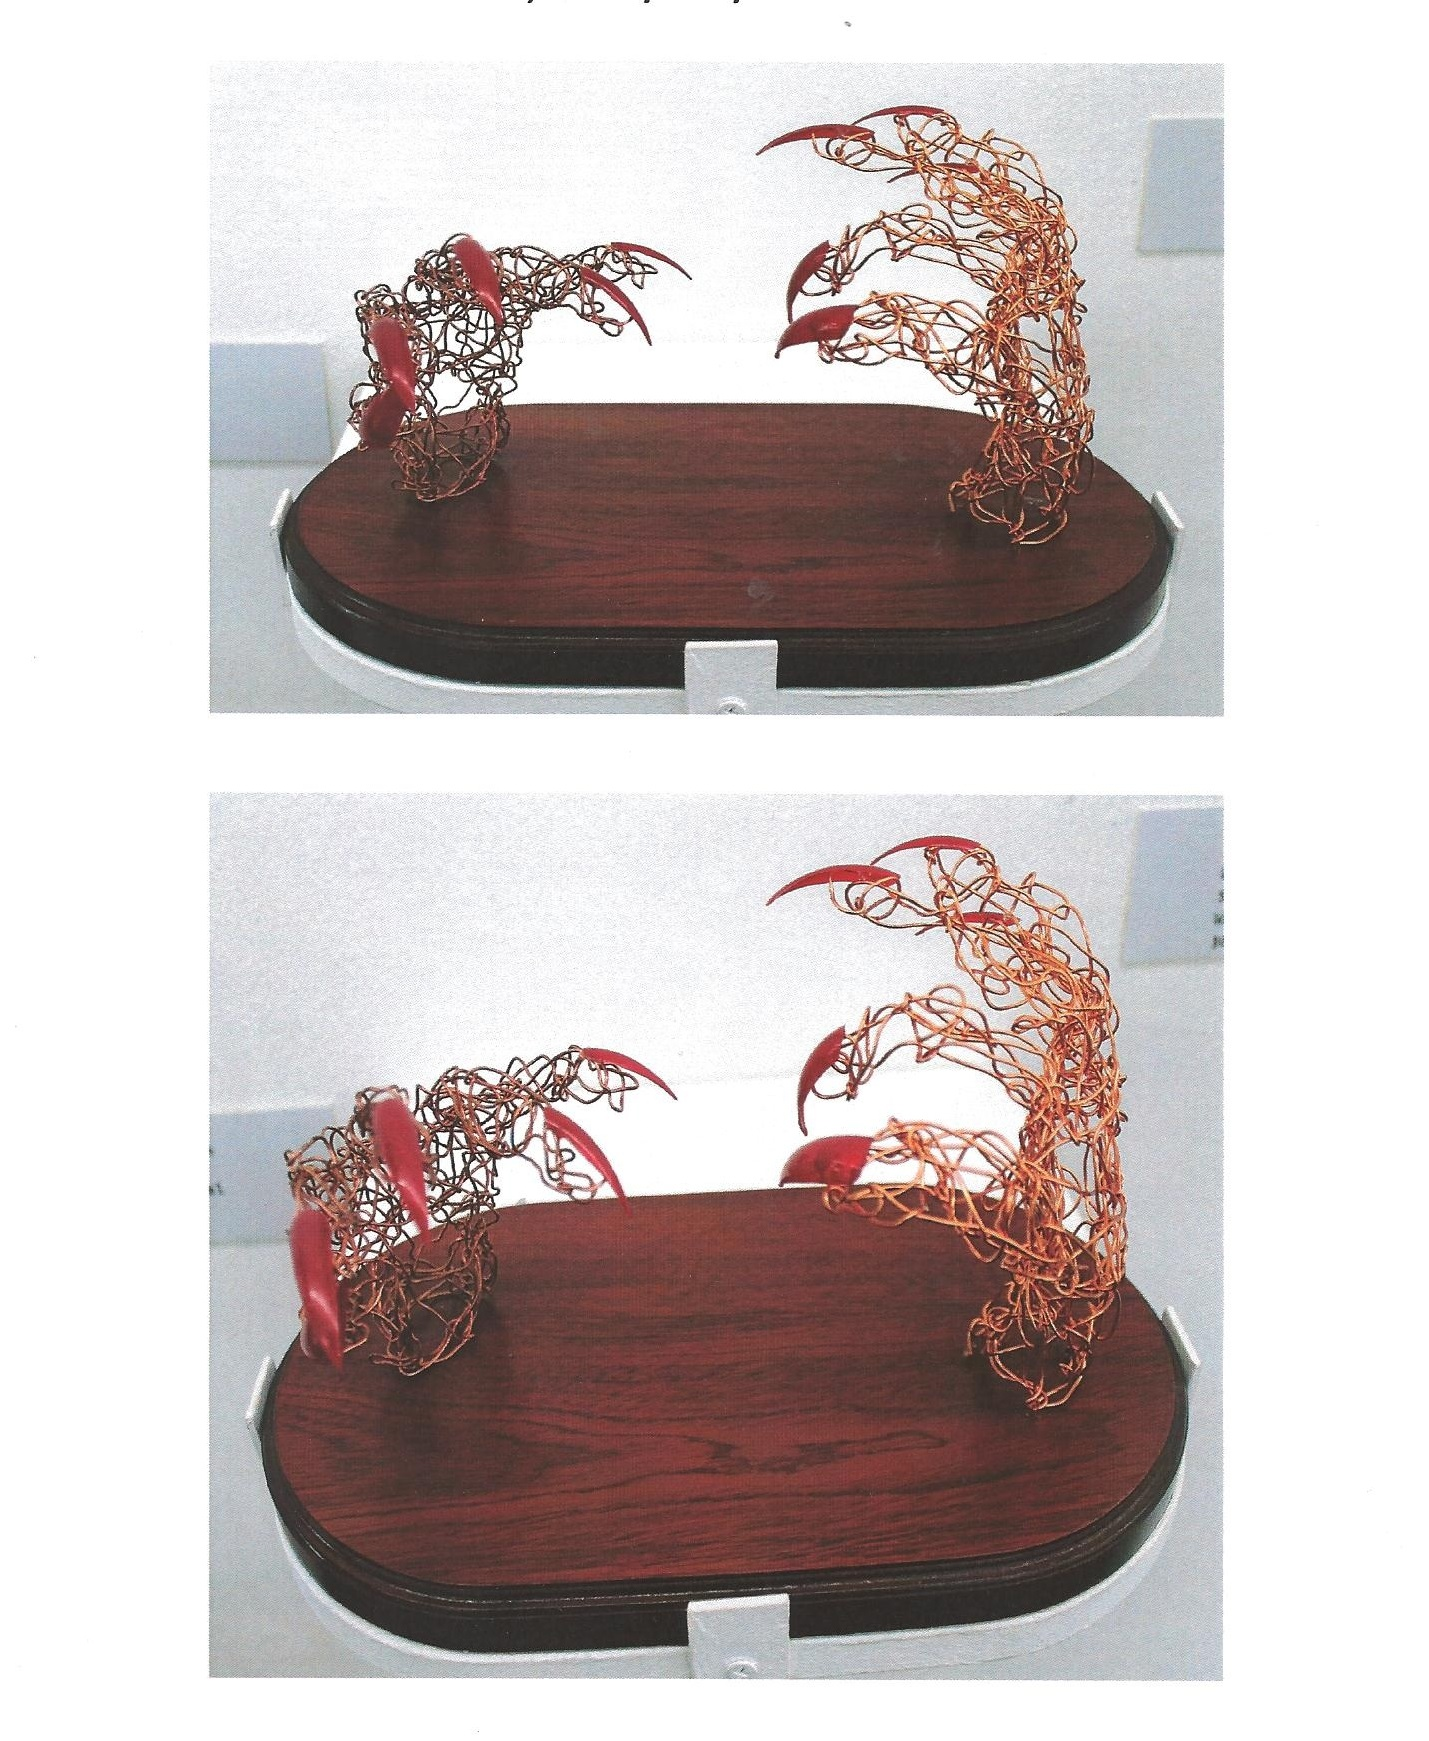 images of wire hands sculpture with red talons on wooden plinth